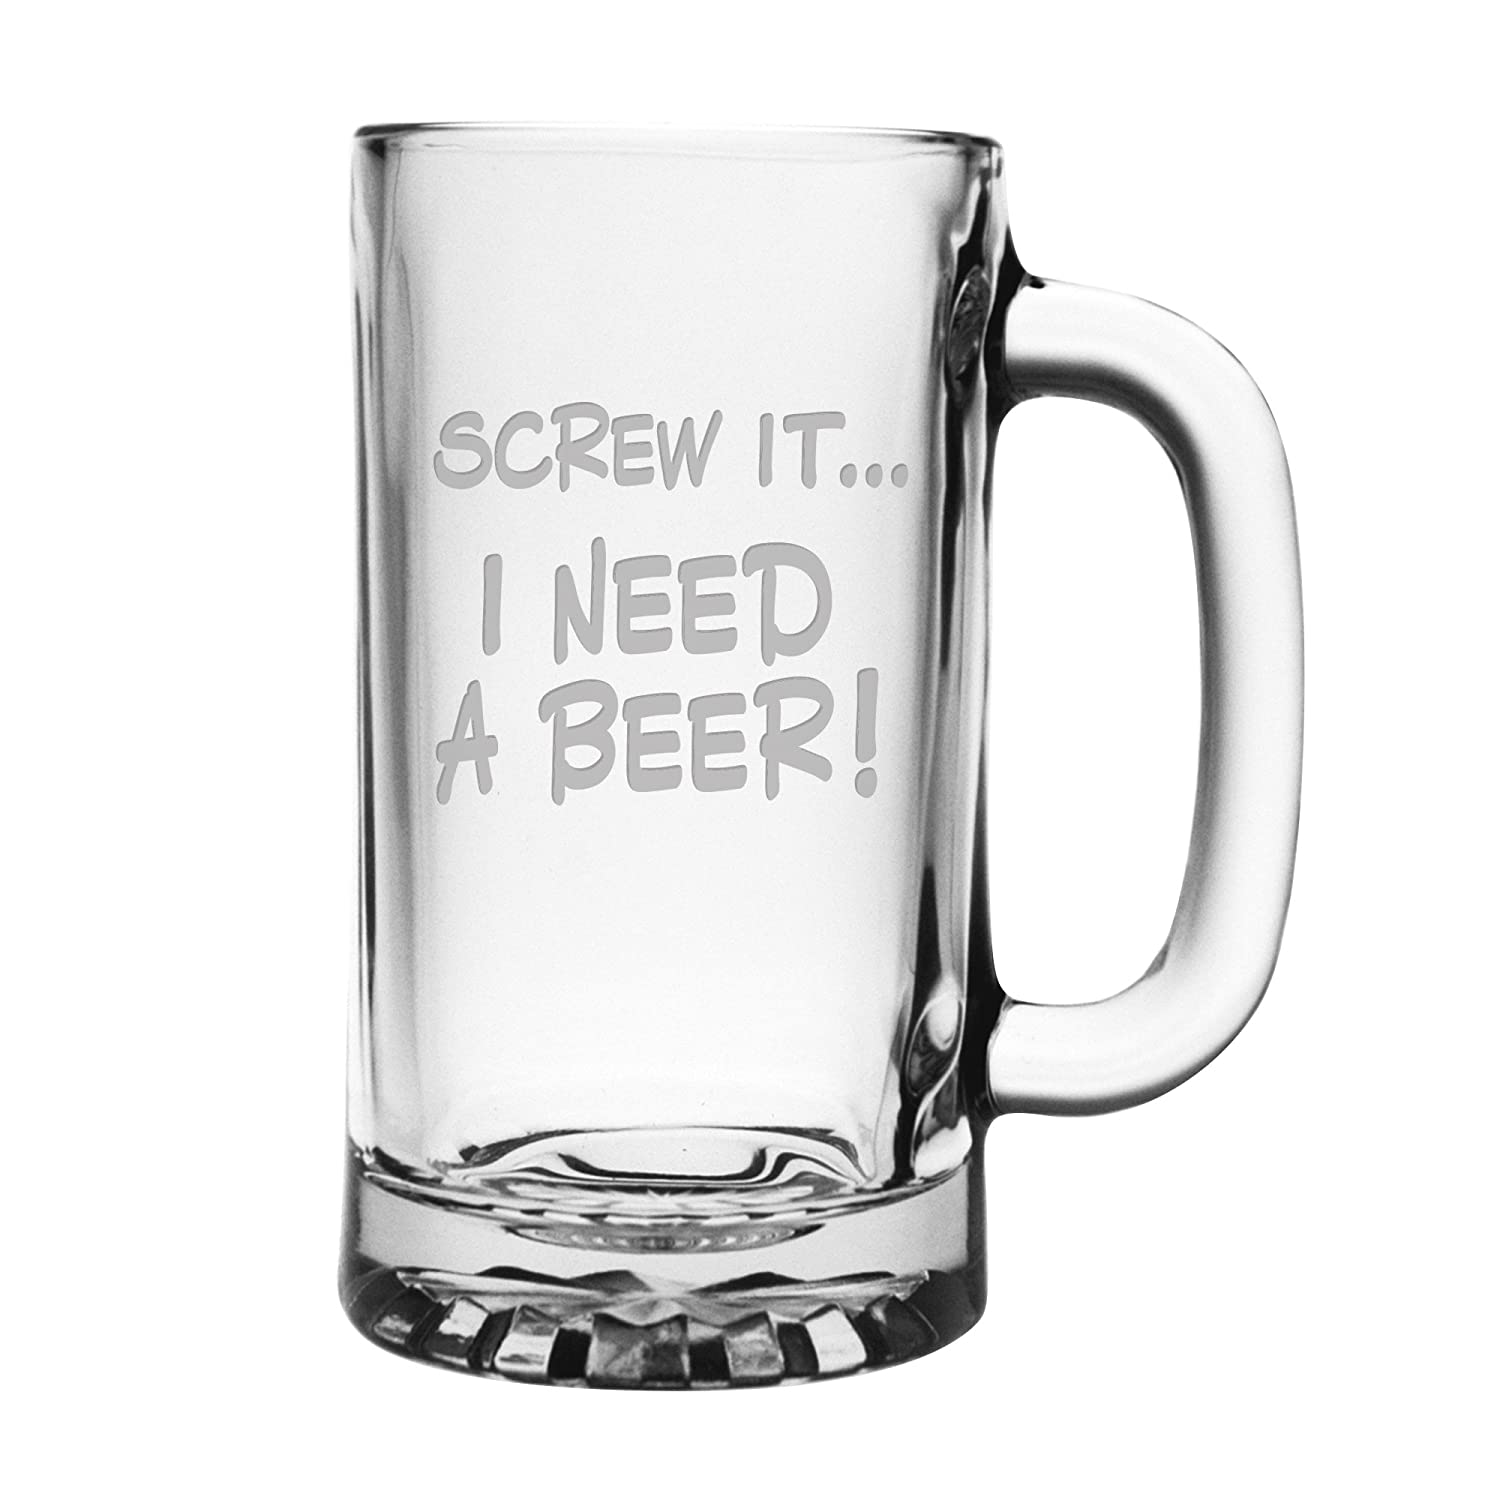 Two 16 ounce Sandblast Etched Funny Glass Beer Mugs I Need a Beer Fineware Screw It..